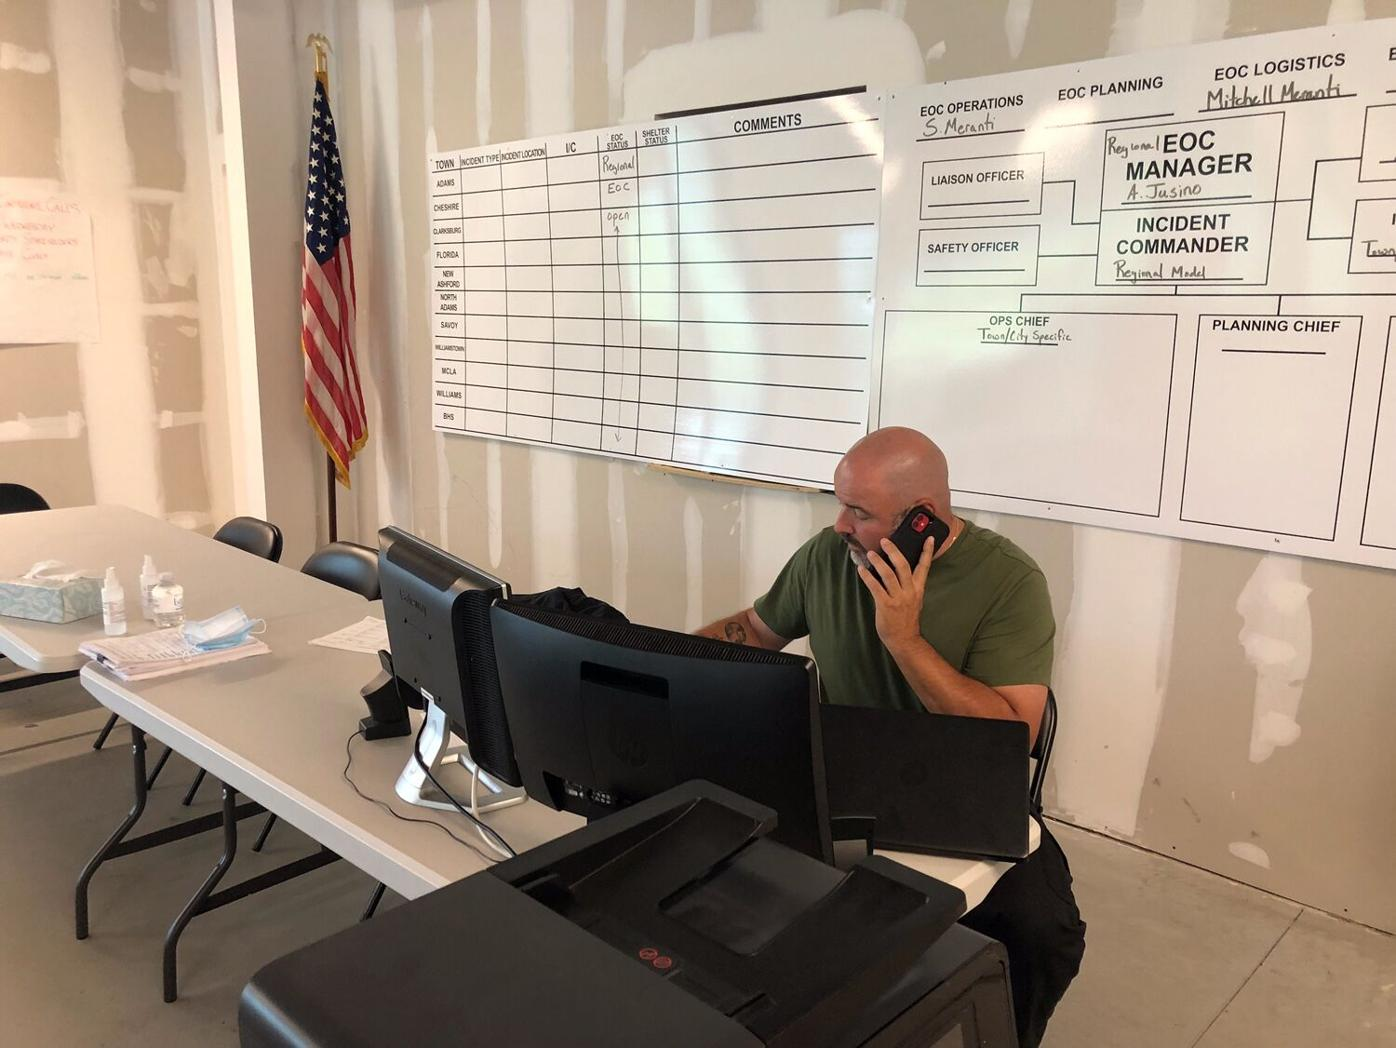 Man on phone at storm command center